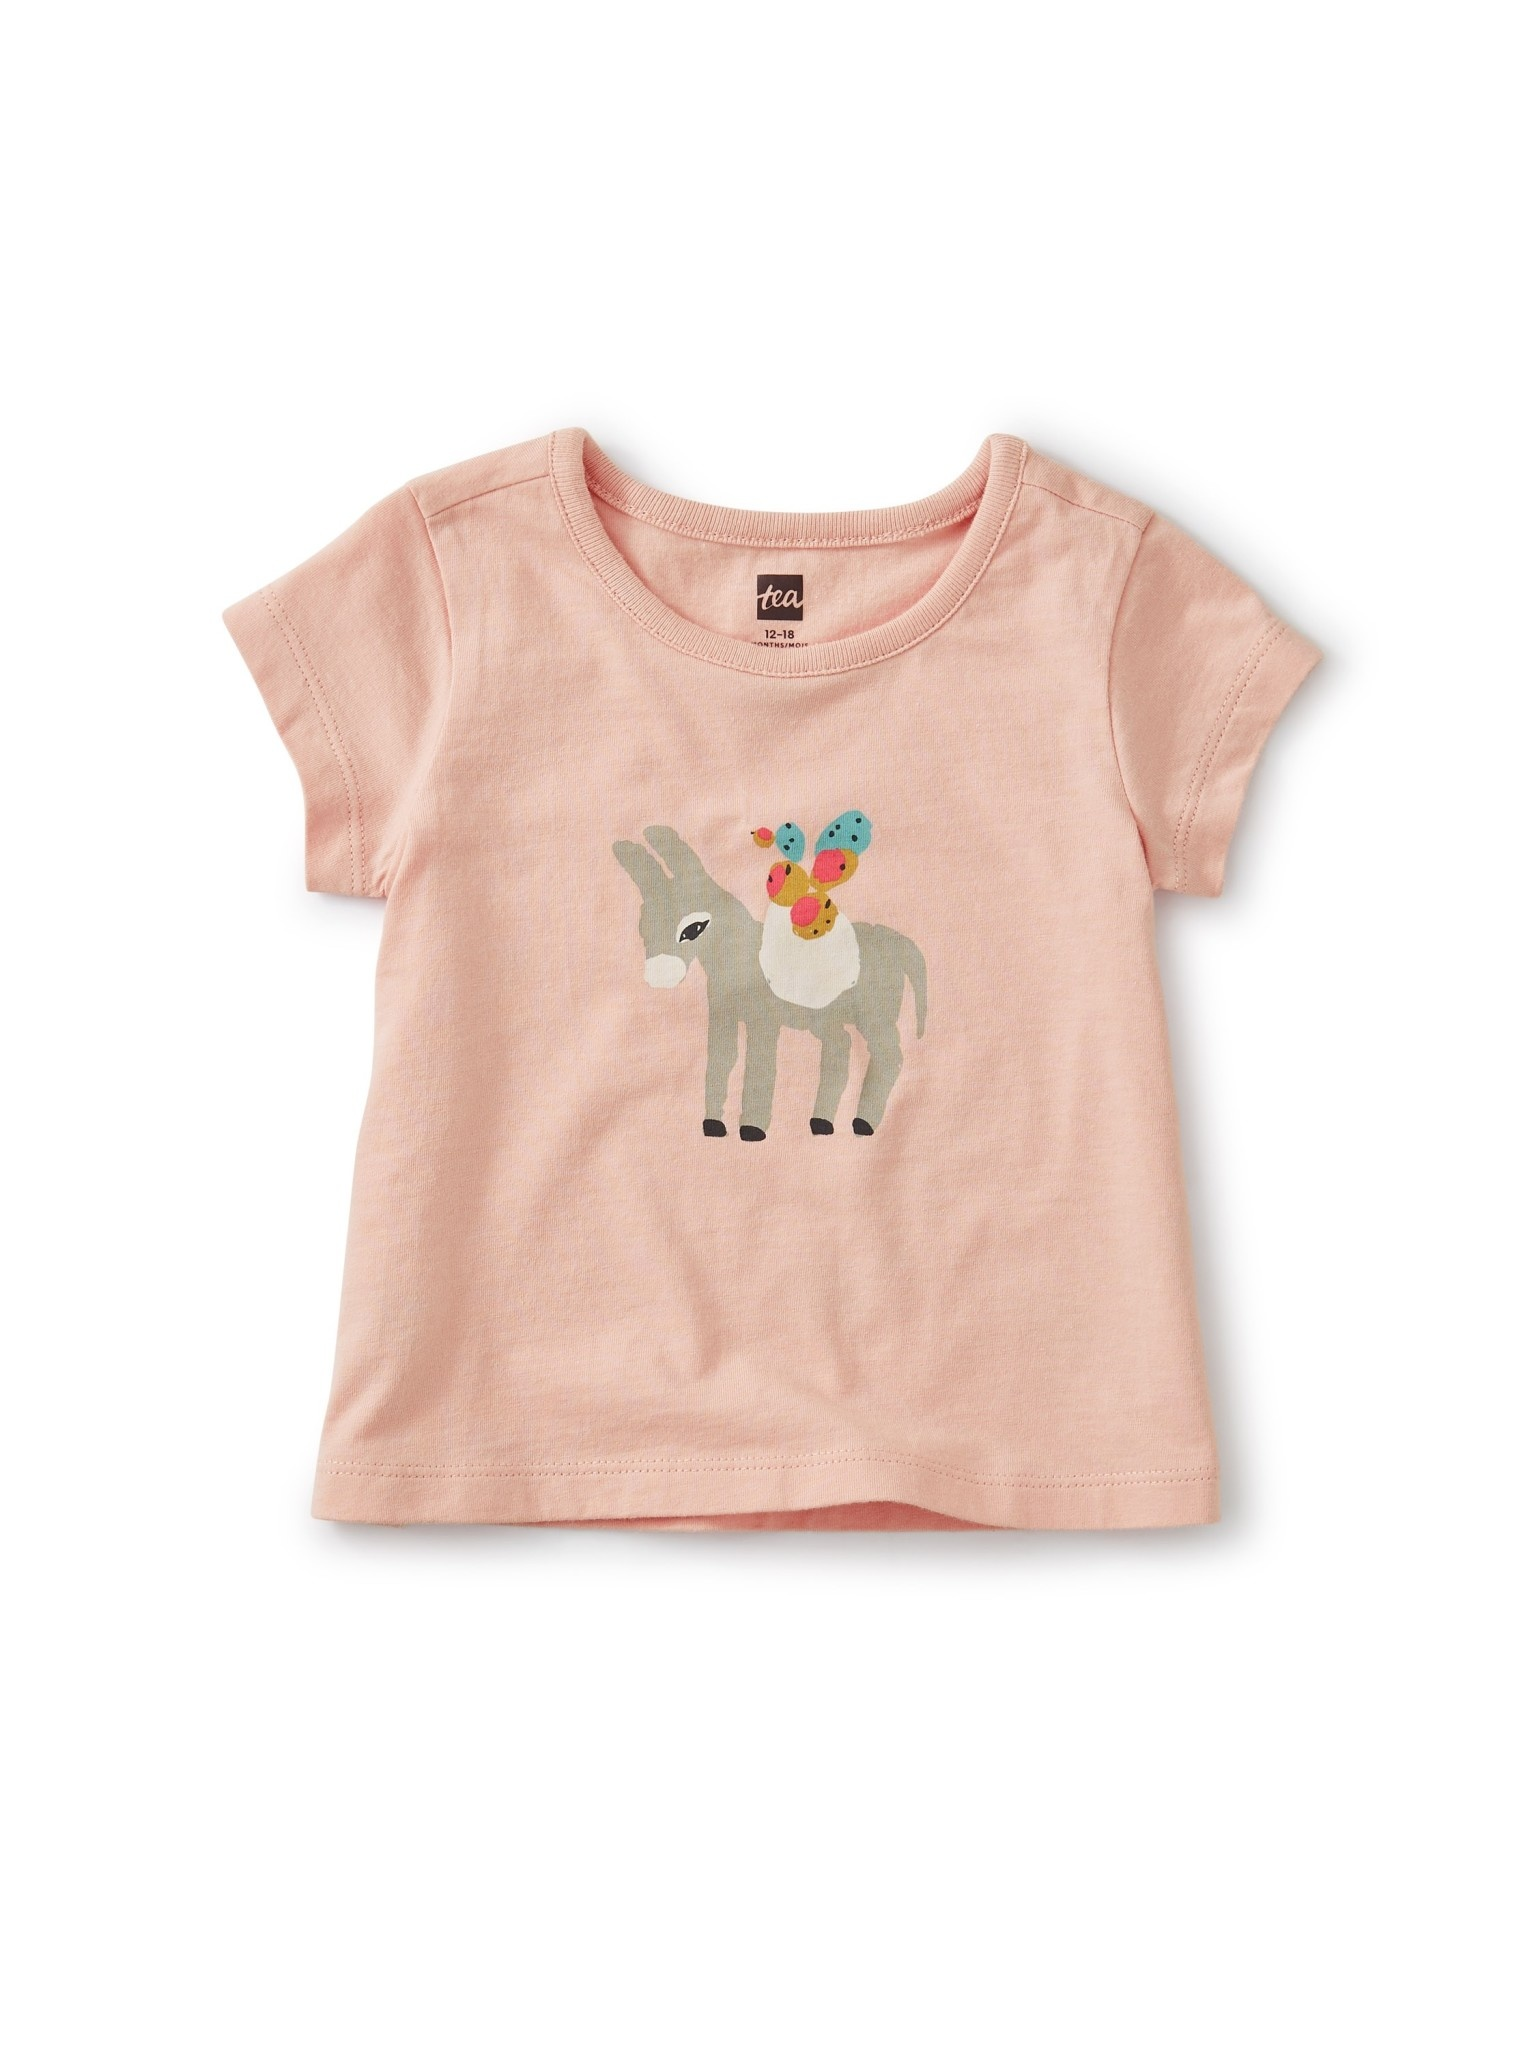 Tea Collection Donkey & Friends BFF Tee